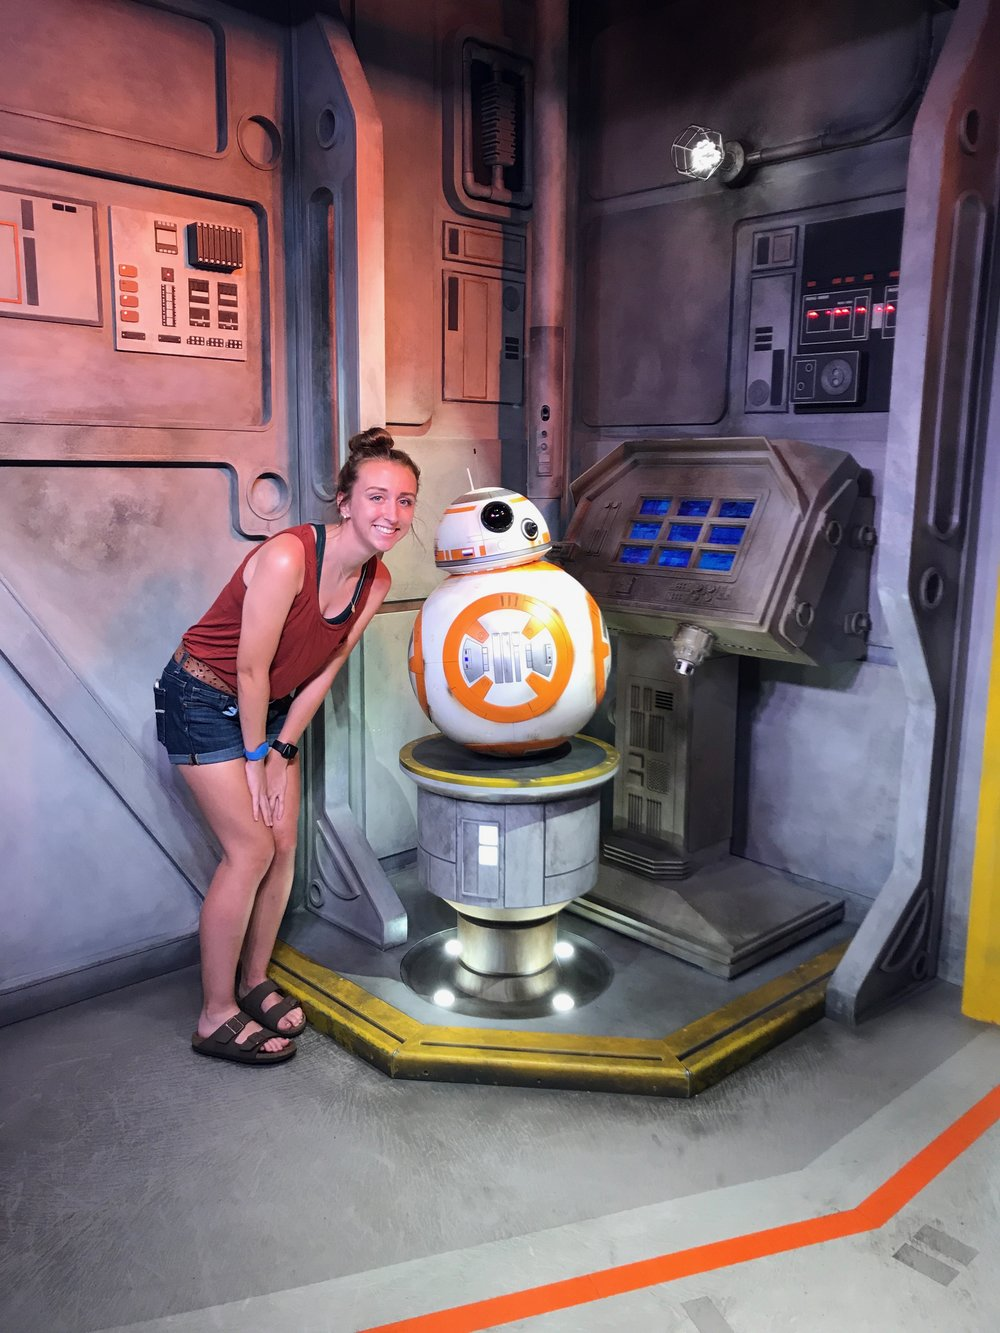 Cutest Droid in the Galaxy- and we think the girl is pretty cute too!